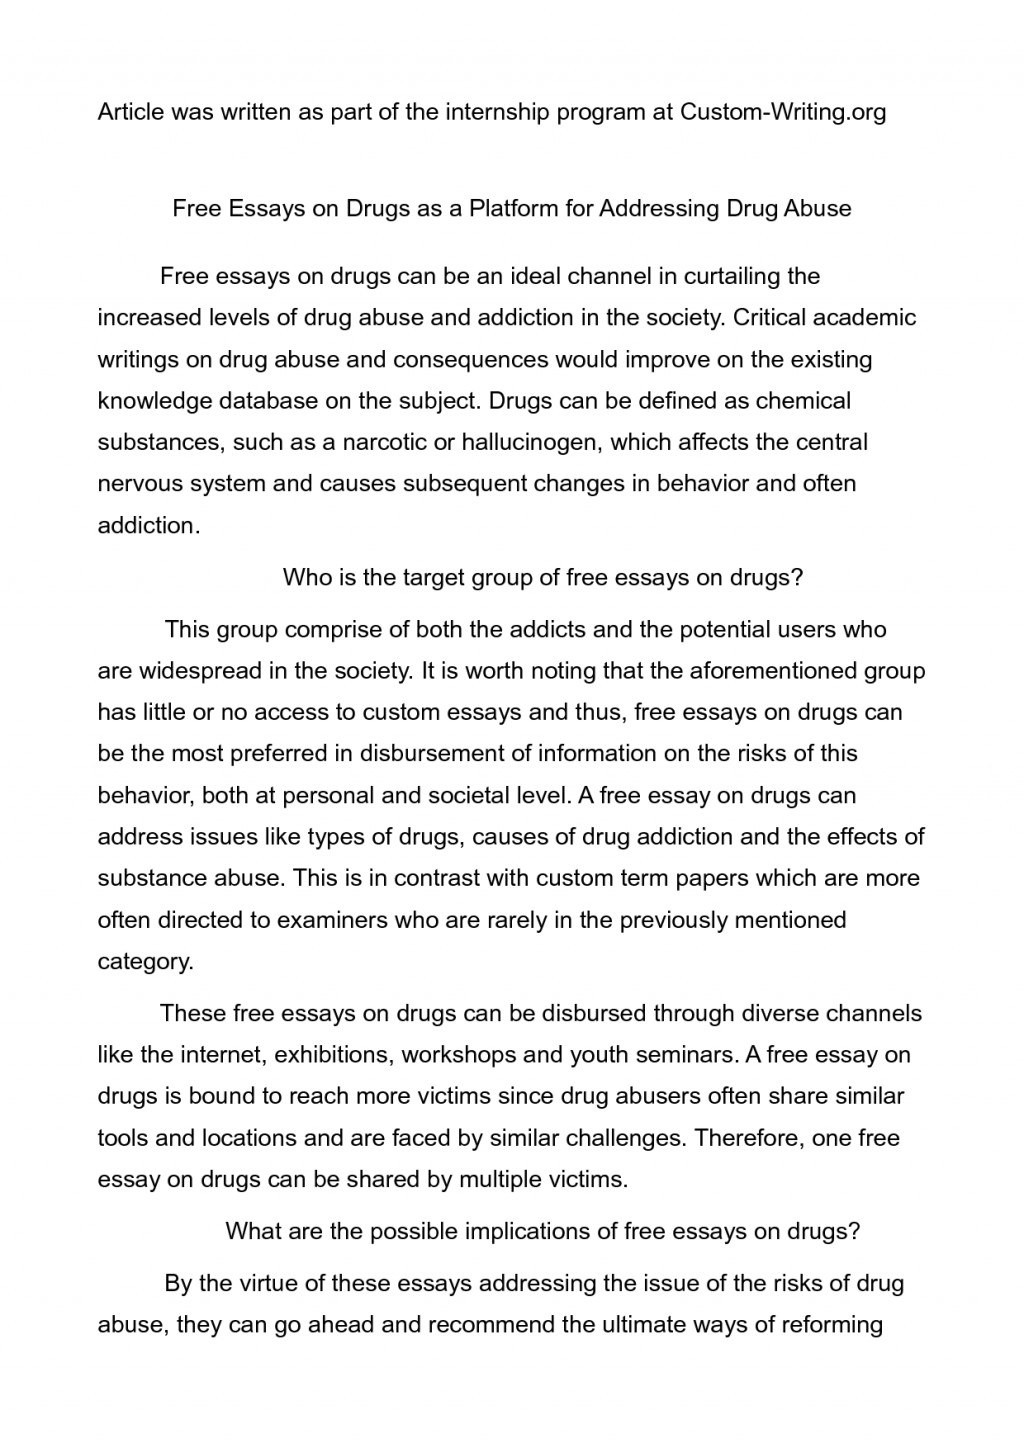 009 Argumentative Essay About Drugs Amazing Sample 6th Grade Introduction Format Large